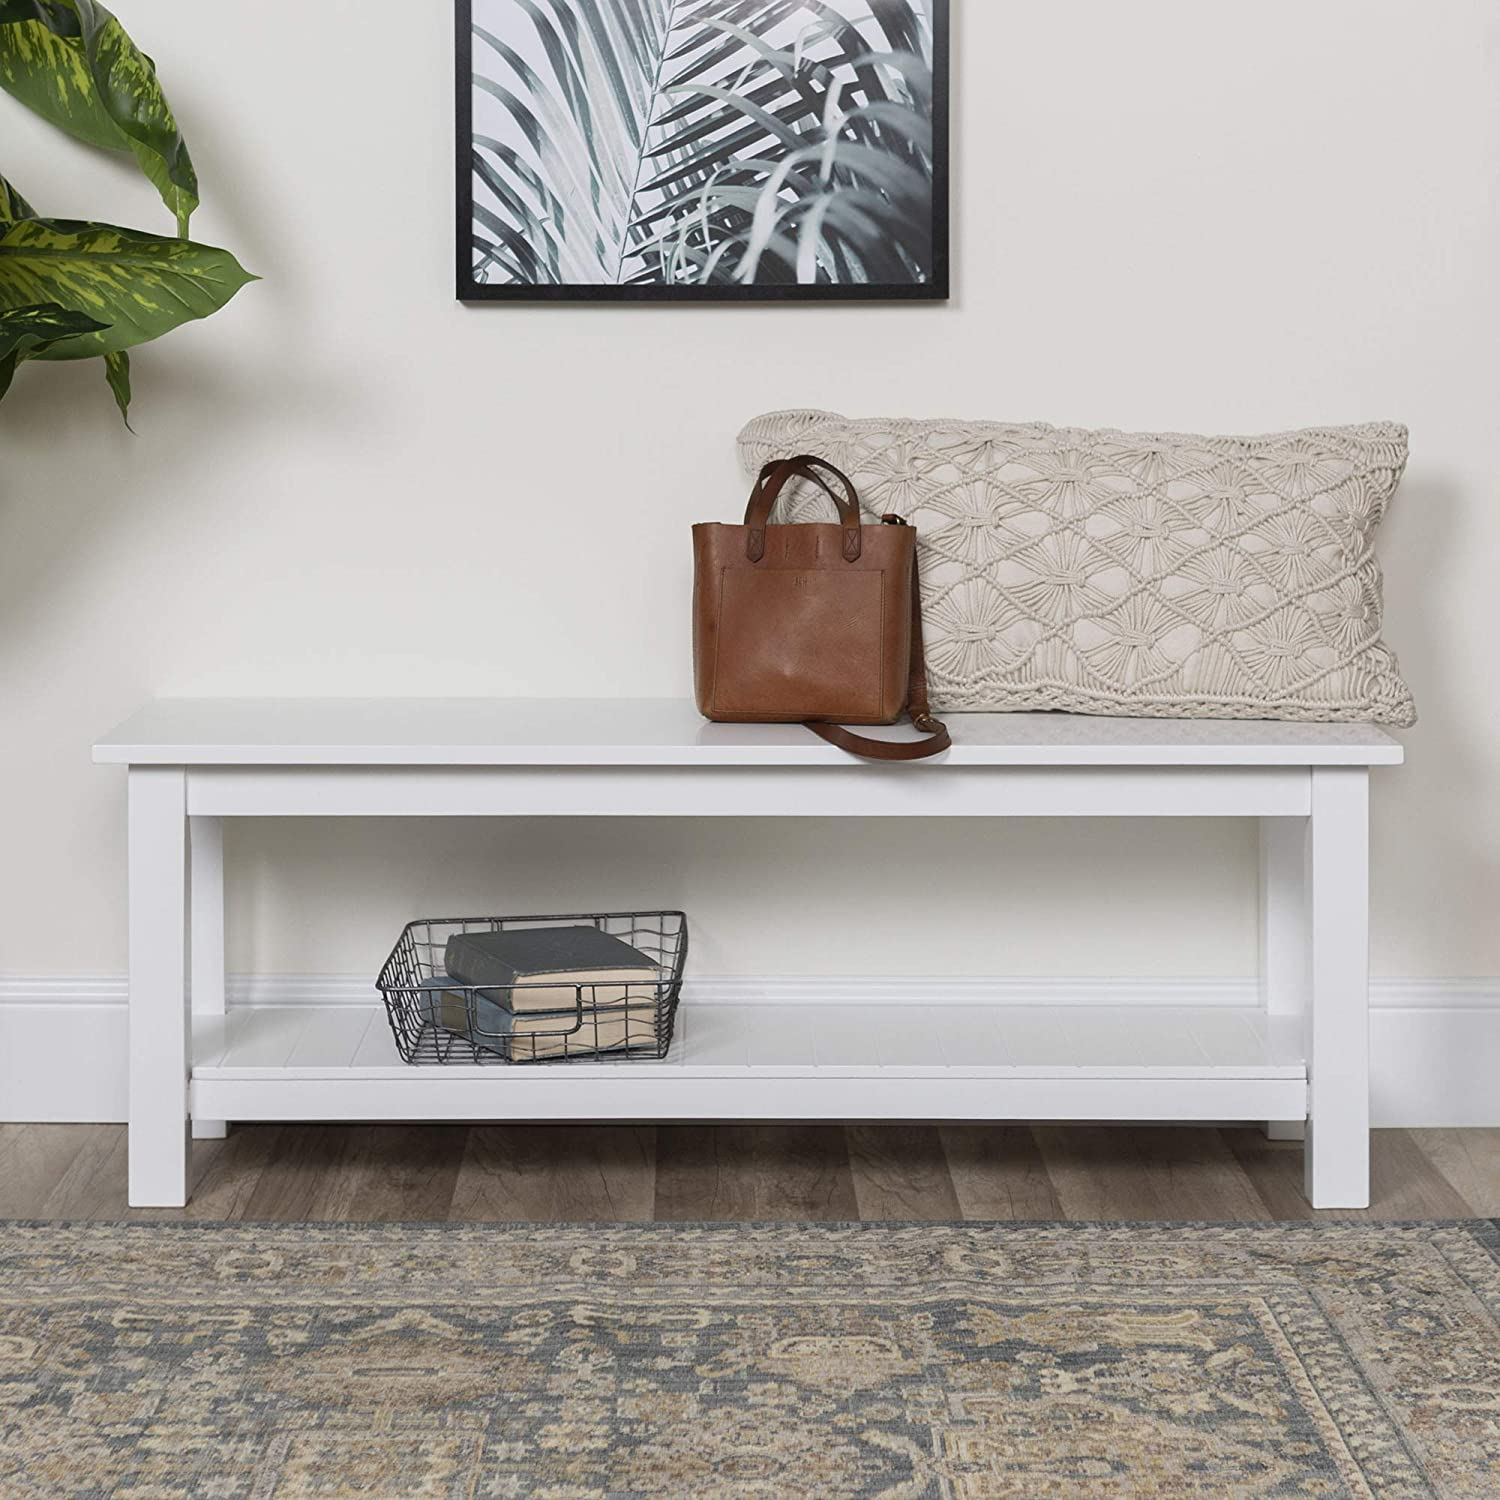 Walker Edison Furniture Company Farmhouse Wood Entryway Dining Bench 50 Inch White Renewed